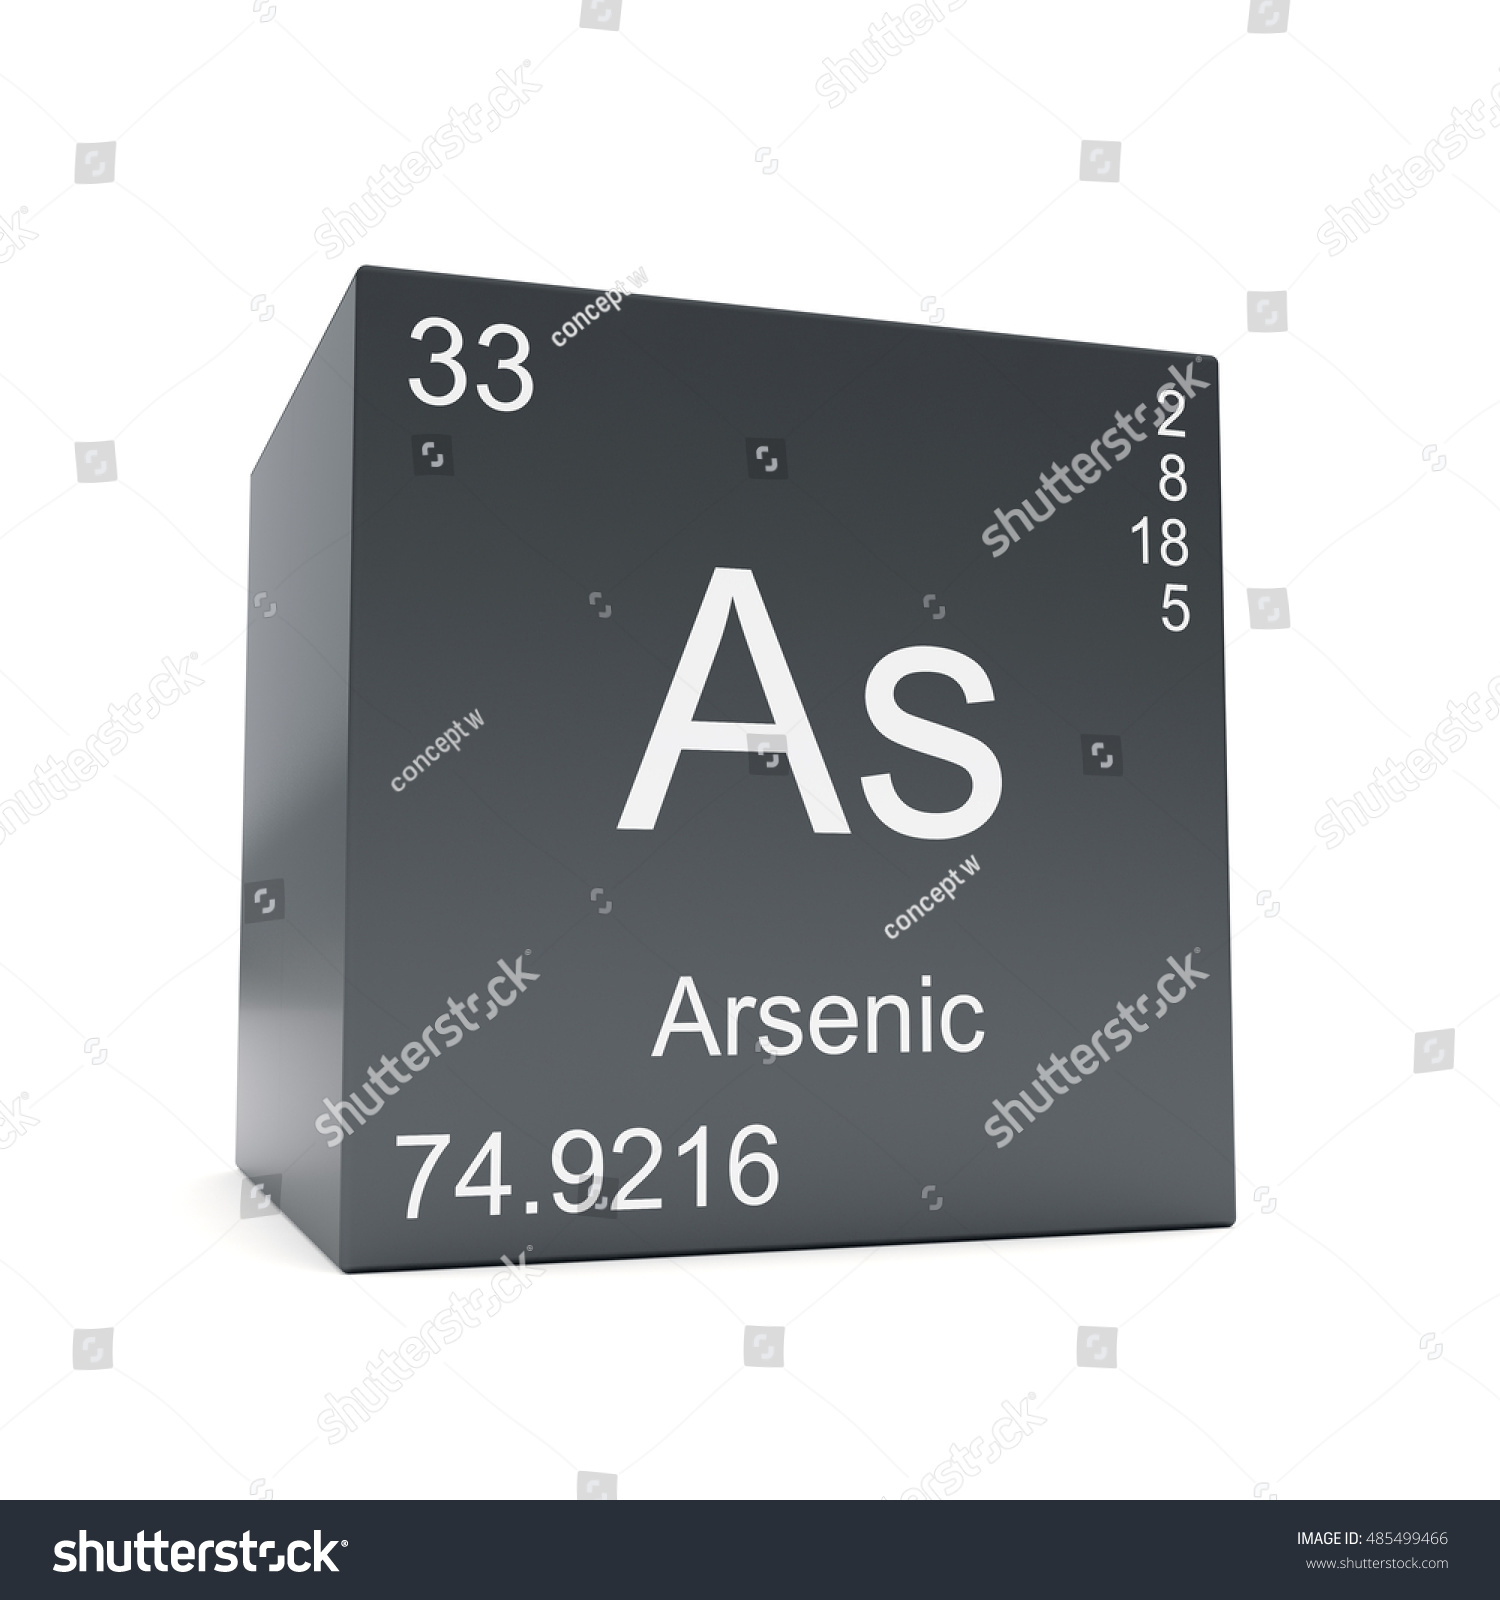 Arsenic chemical element symbol periodic table stock illustration arsenic chemical element symbol from the periodic table displayed on black cube 3d render biocorpaavc Image collections